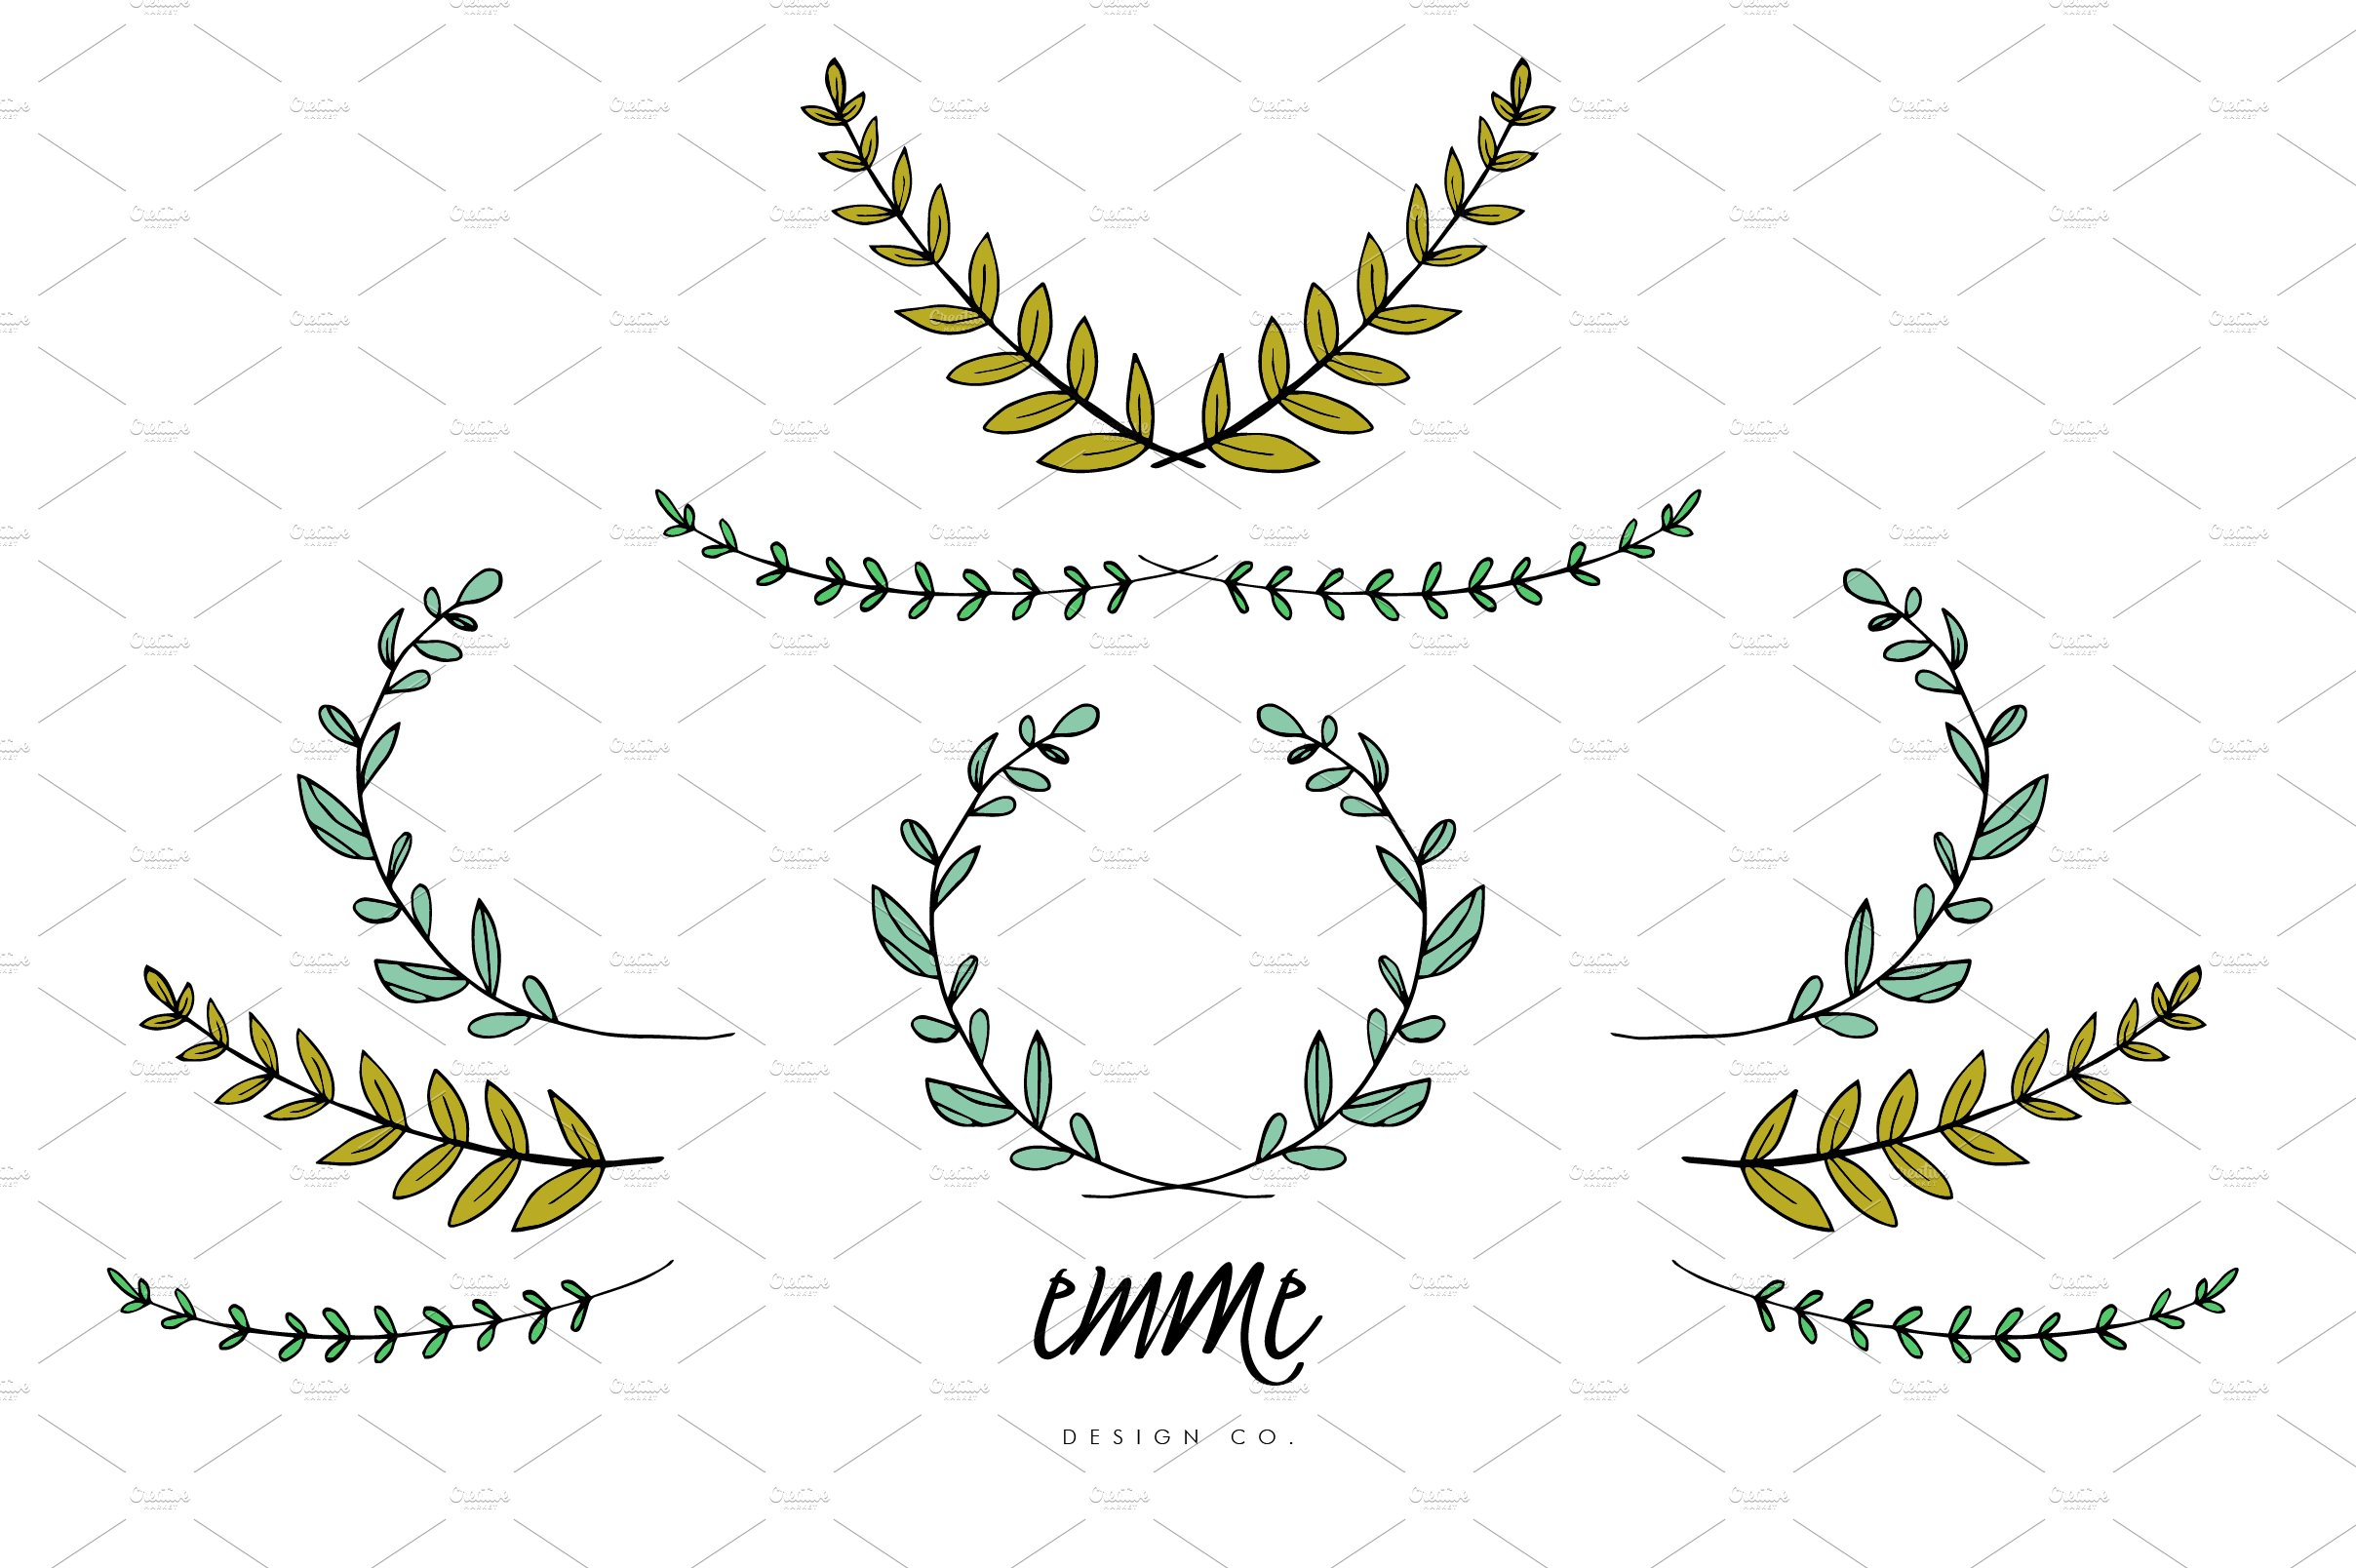 Uncategorized Drawn Leaf hand drawn leaf vine photos graphics fonts themes templates branches leaves vector